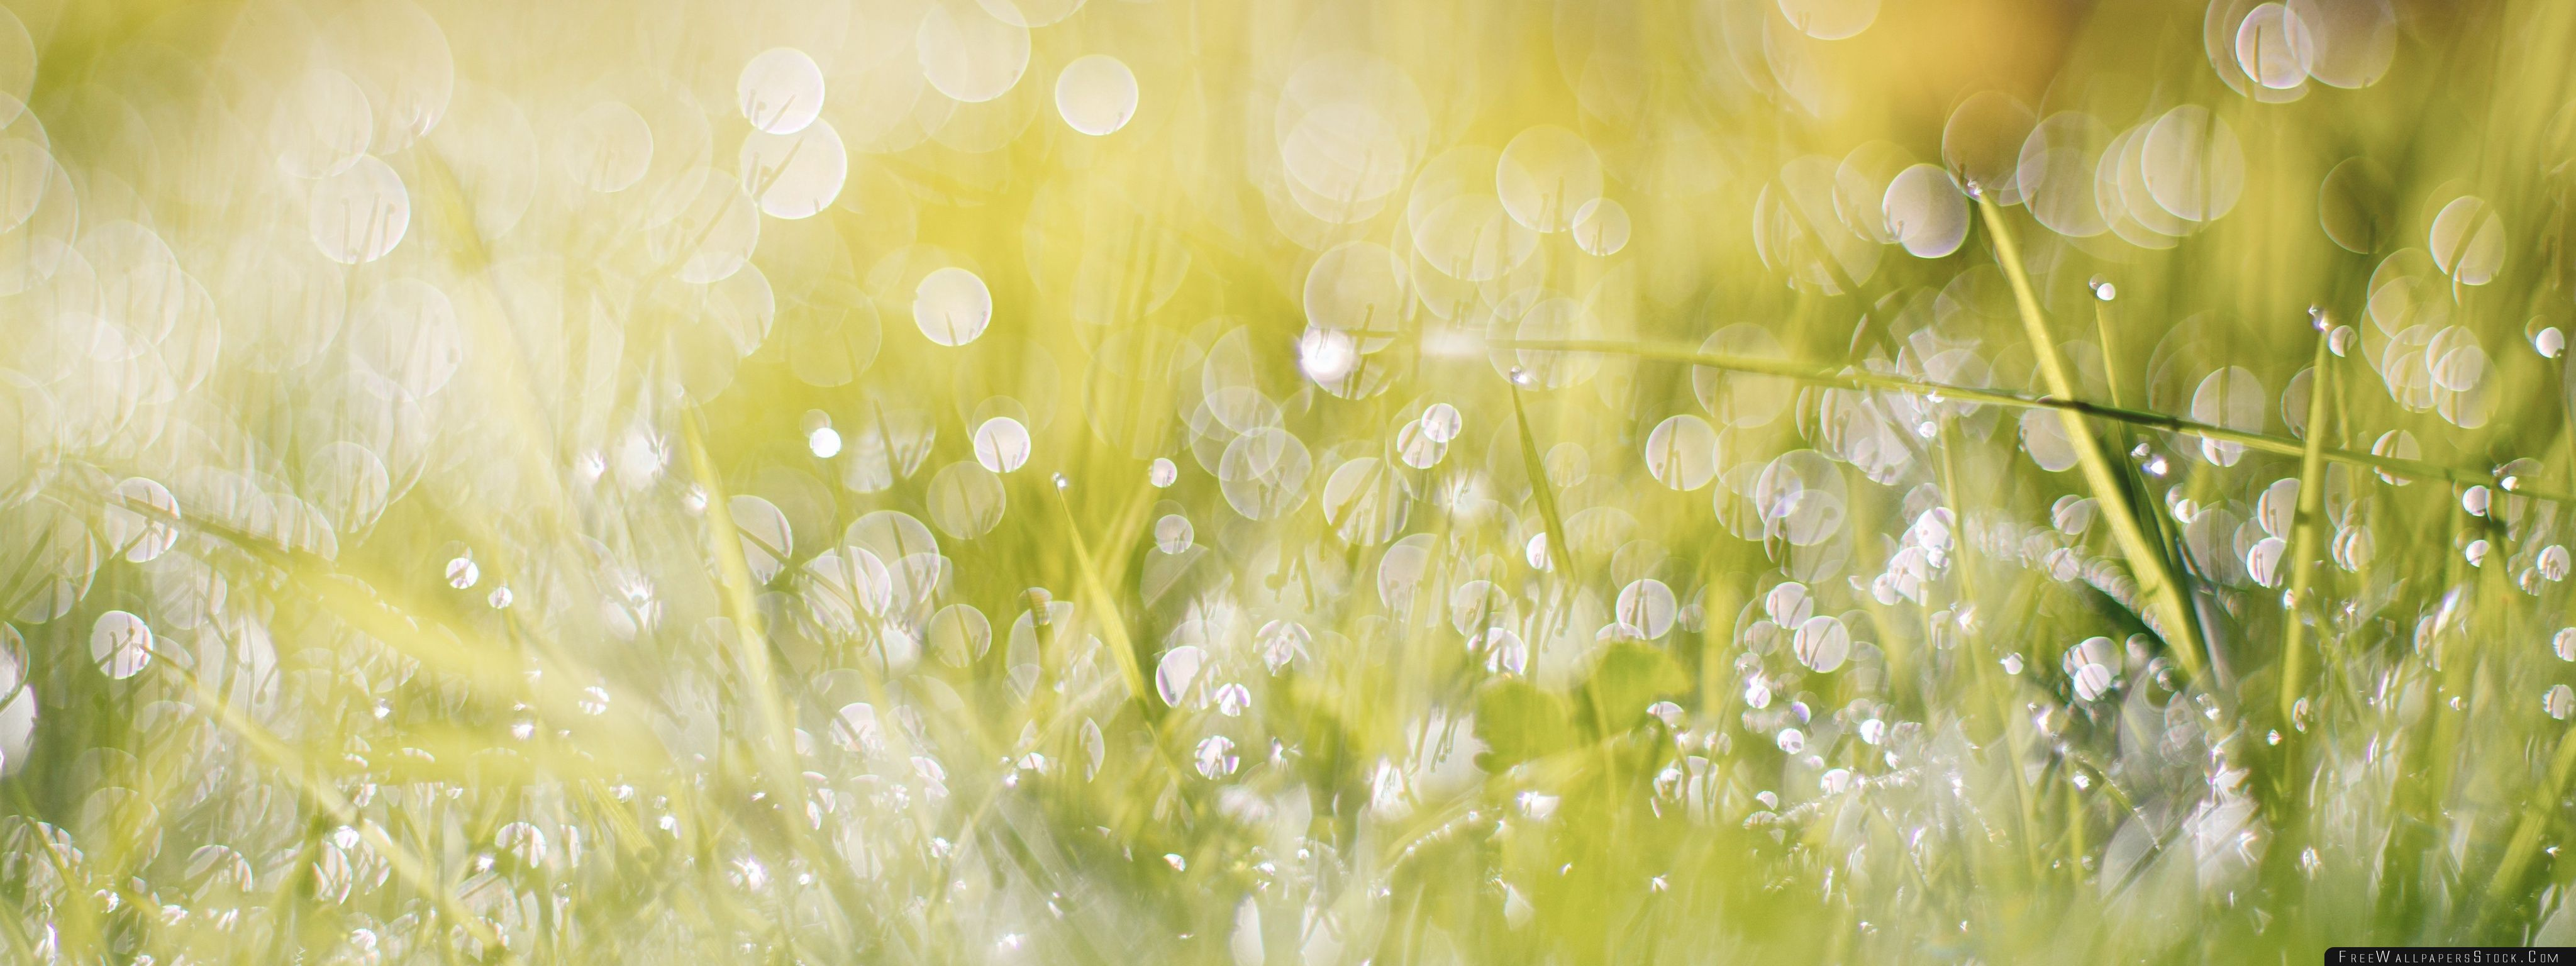 Download Free Wallpaper Wet Grass Bokeh